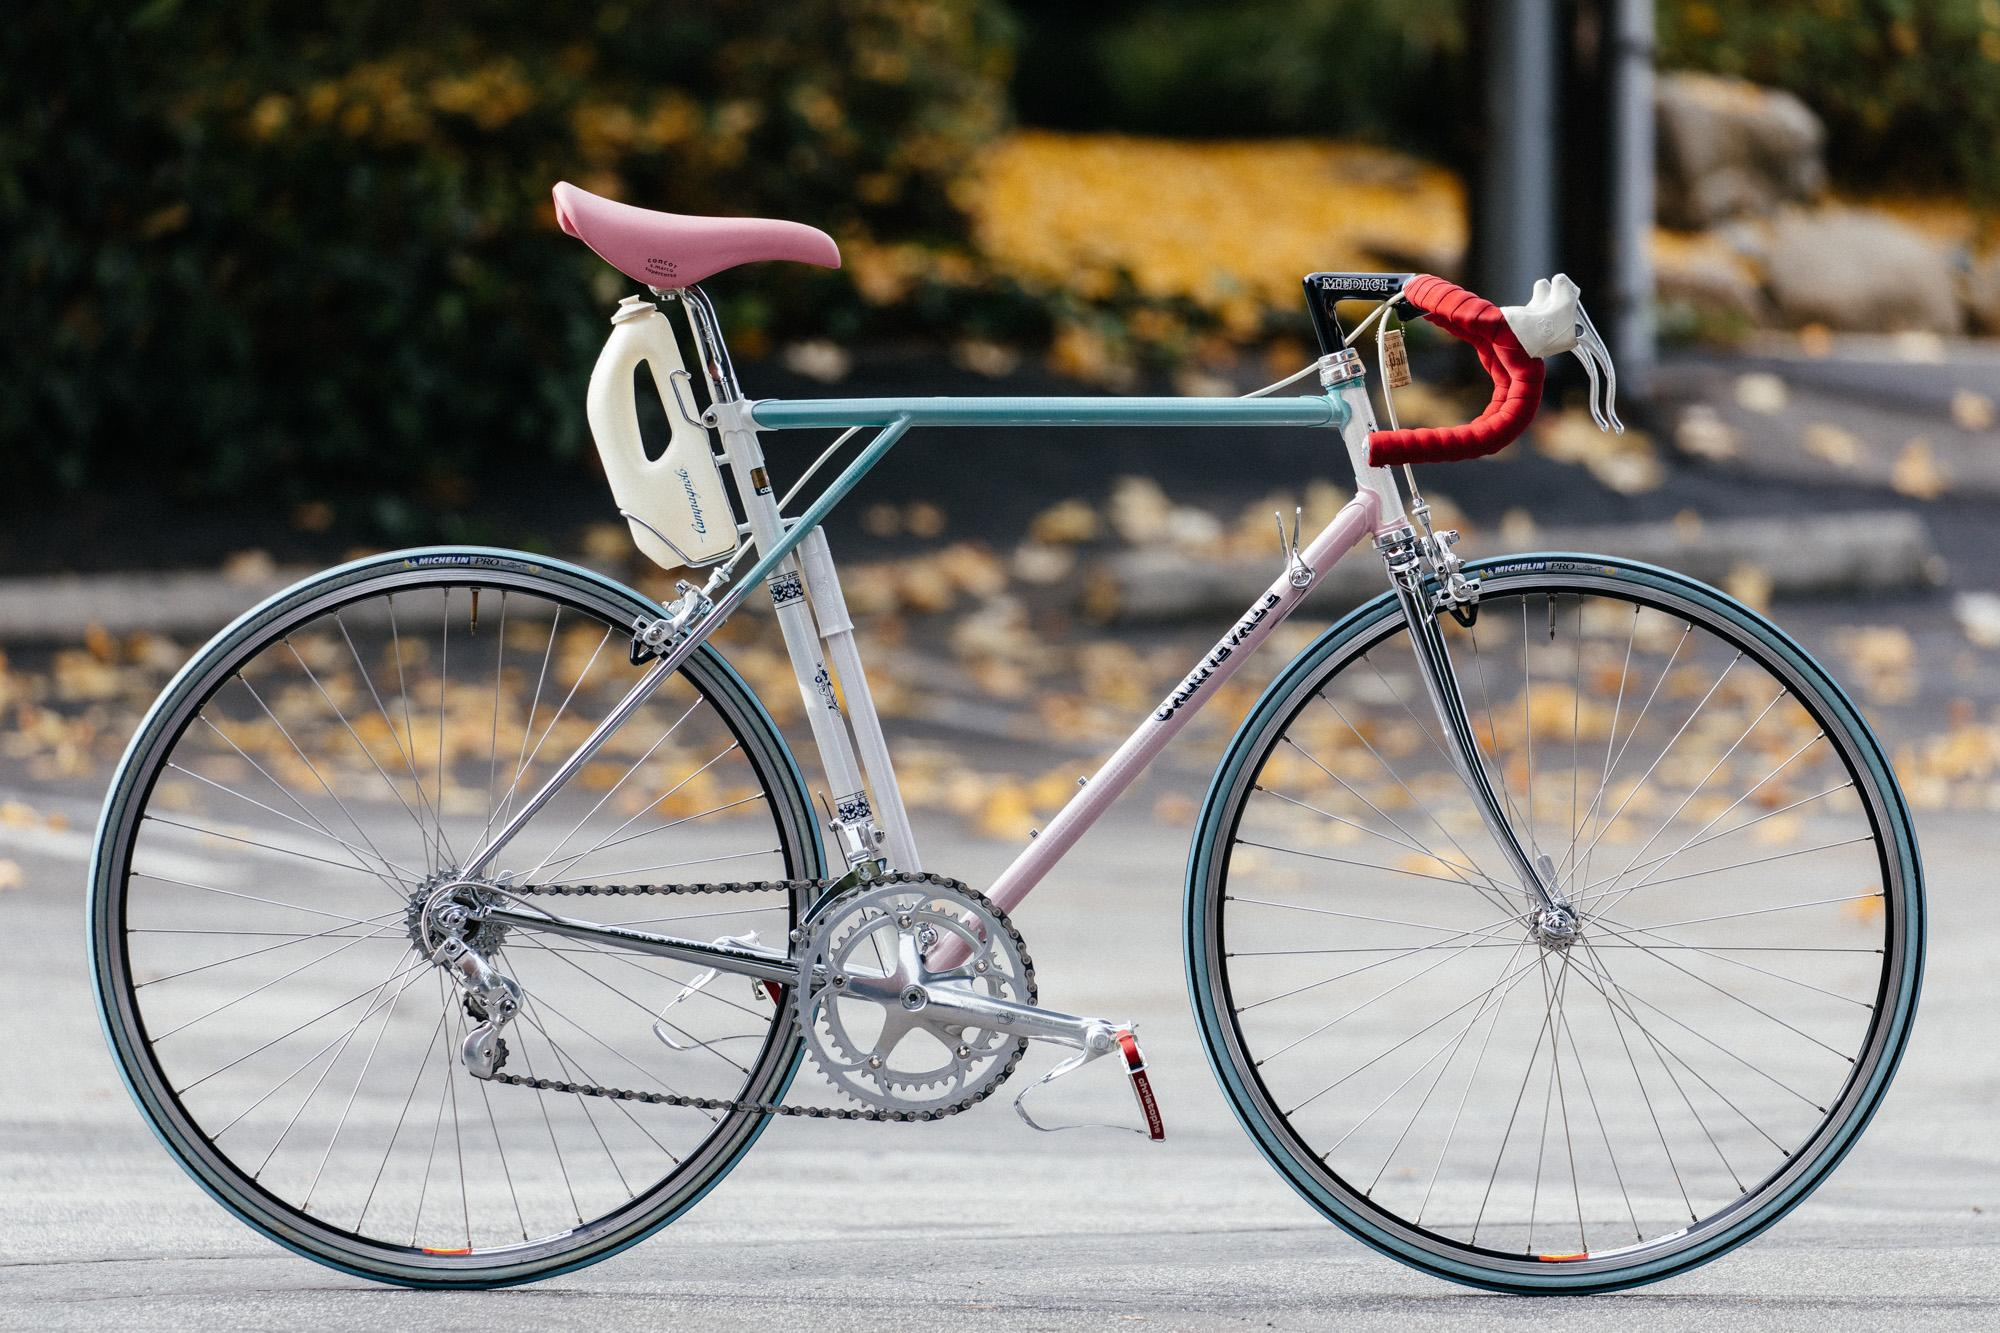 Medici-Built Carnevale C-Record Road